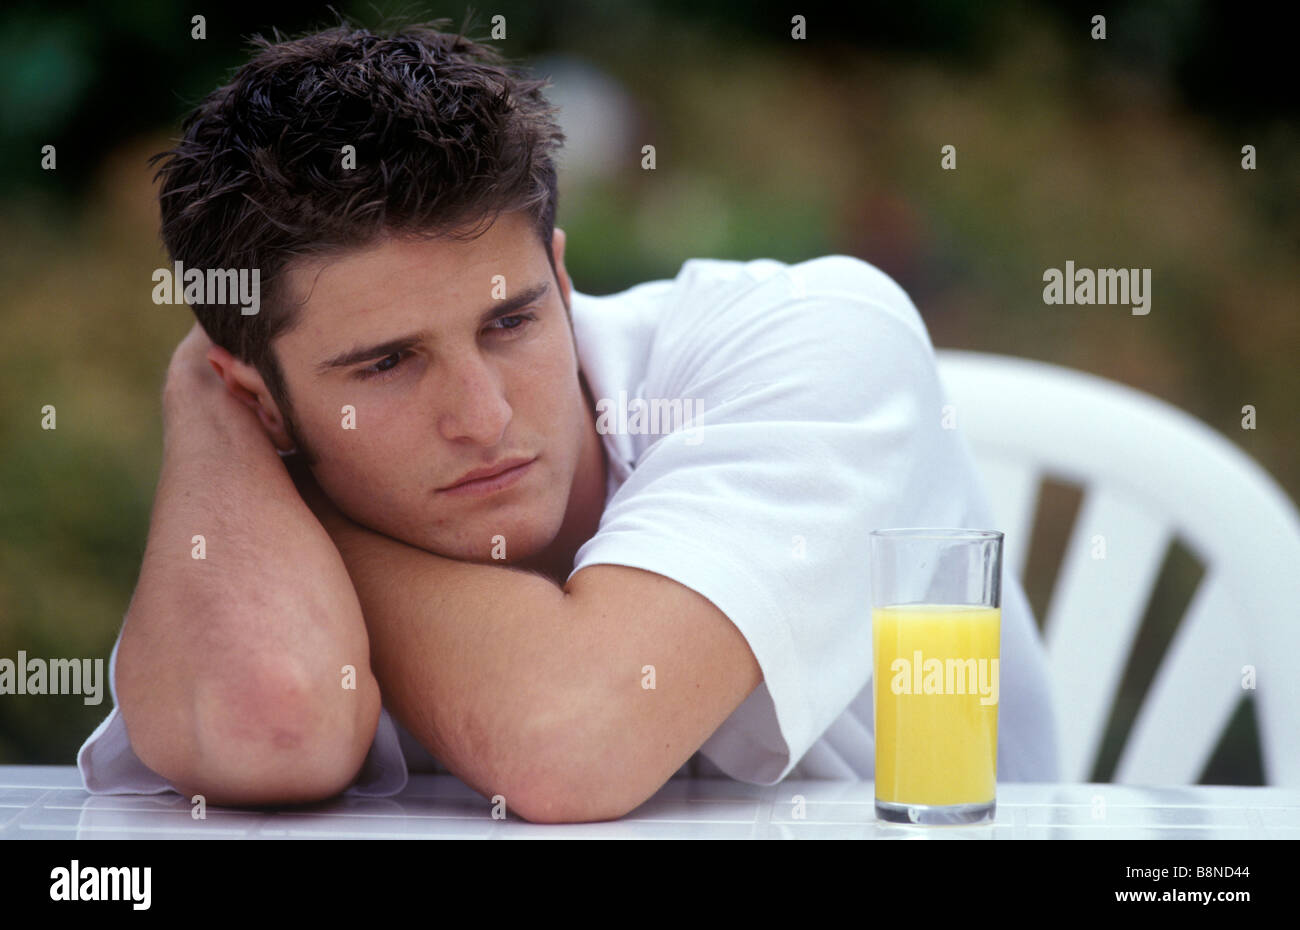 depressed man sitting outside with a glass of orange juice - Stock Image